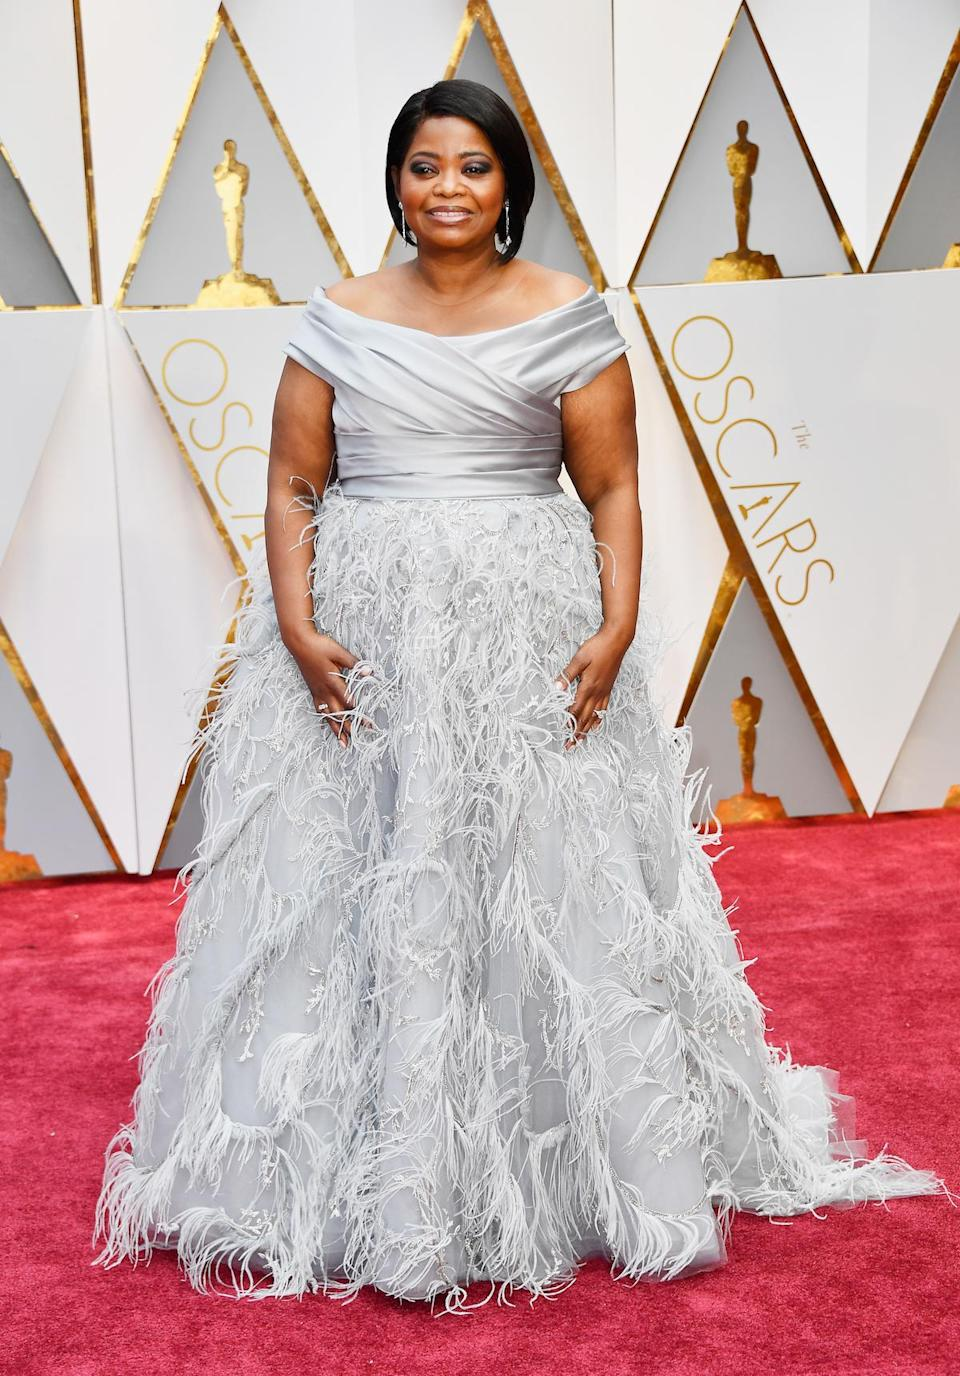 "<p>Octavia Spencer followed the fashion advice of best dressed winners of the past including <a href=""https://www.yahoo.com/style/oscars-best-worst-dressed-slideshow-wp-172118723/photo-p-sometimes-more-better-case-photo-172118018.html"" data-ylk=""slk:Penelope Cruz;outcm:mb_qualified_link;_E:mb_qualified_link;ct:story;"" class=""link rapid-noclick-resp yahoo-link"">Penelope Cruz</a> and <a href=""https://www.yahoo.com/style/time-best-dressed-oscars-jennifer-slideshow-wp-164232438/photo-p-hot-tip-feathers-amy-photo-164232443.html"" data-ylk=""slk:Amy Adams;outcm:mb_qualified_link;_E:mb_qualified_link;ct:story;"" class=""link rapid-noclick-resp yahoo-link"">Amy Adams</a> who proved that feather trains are the key to getting two thumbs up from the fashion police. <em>(Photo: Getty Images)</em> </p>"